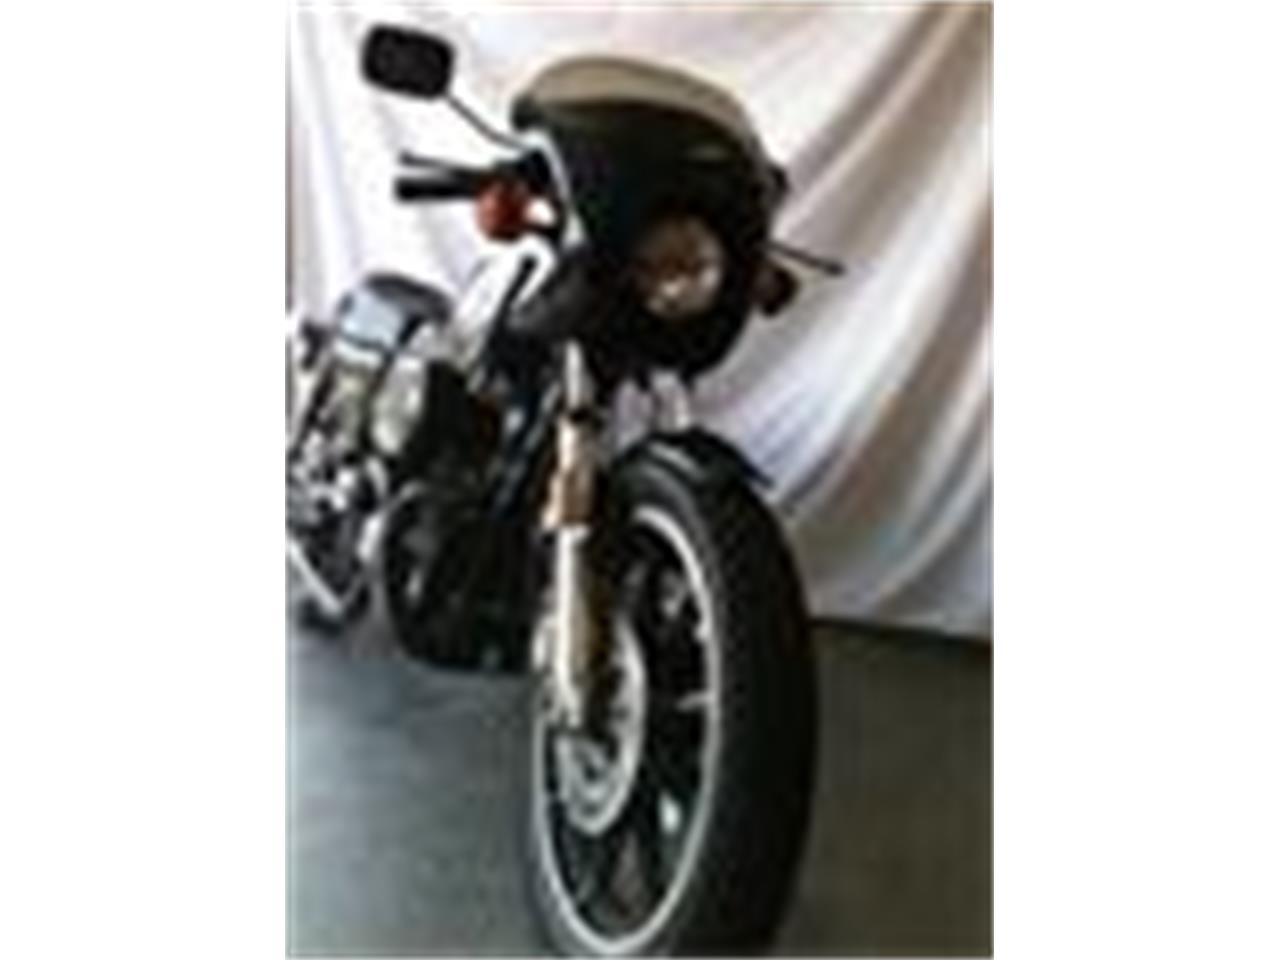 Large Picture of 1978 Harley-Davidson XLCR1000 located in Corryton Tennessee Offered by a Private Seller - IFKK